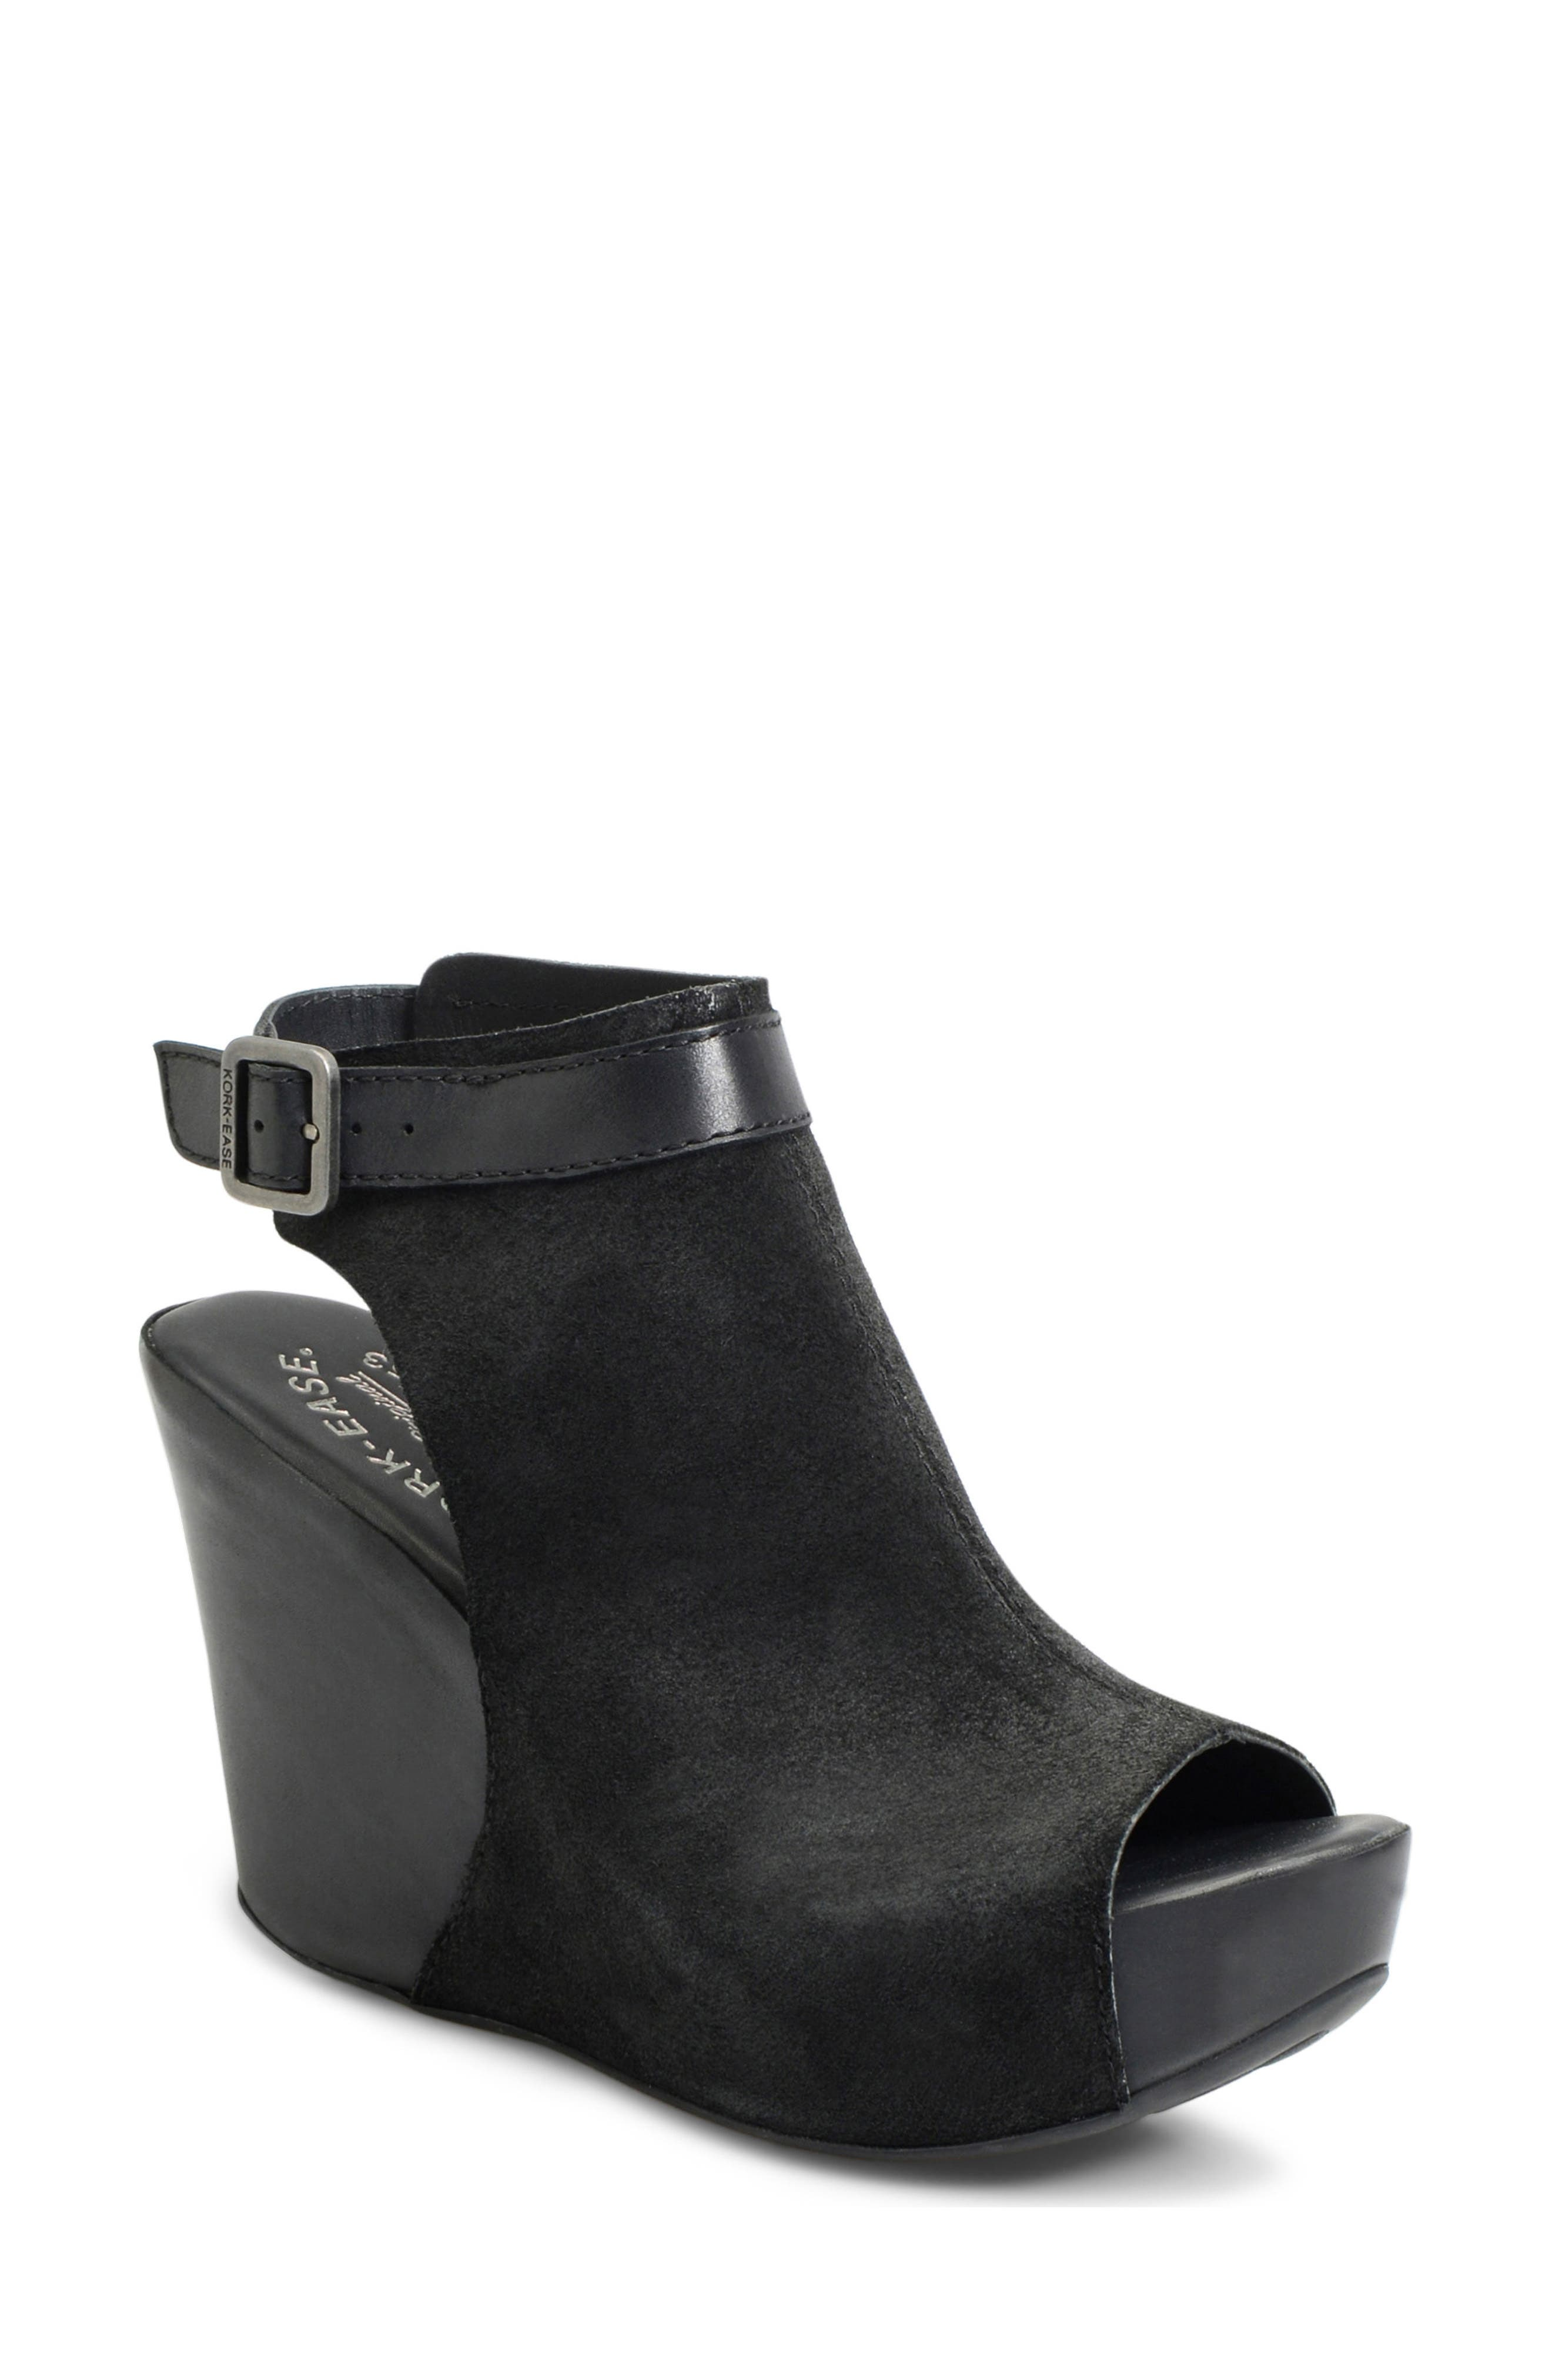 'Berit' Wedge Sandal,                             Main thumbnail 1, color,                             Black Suede